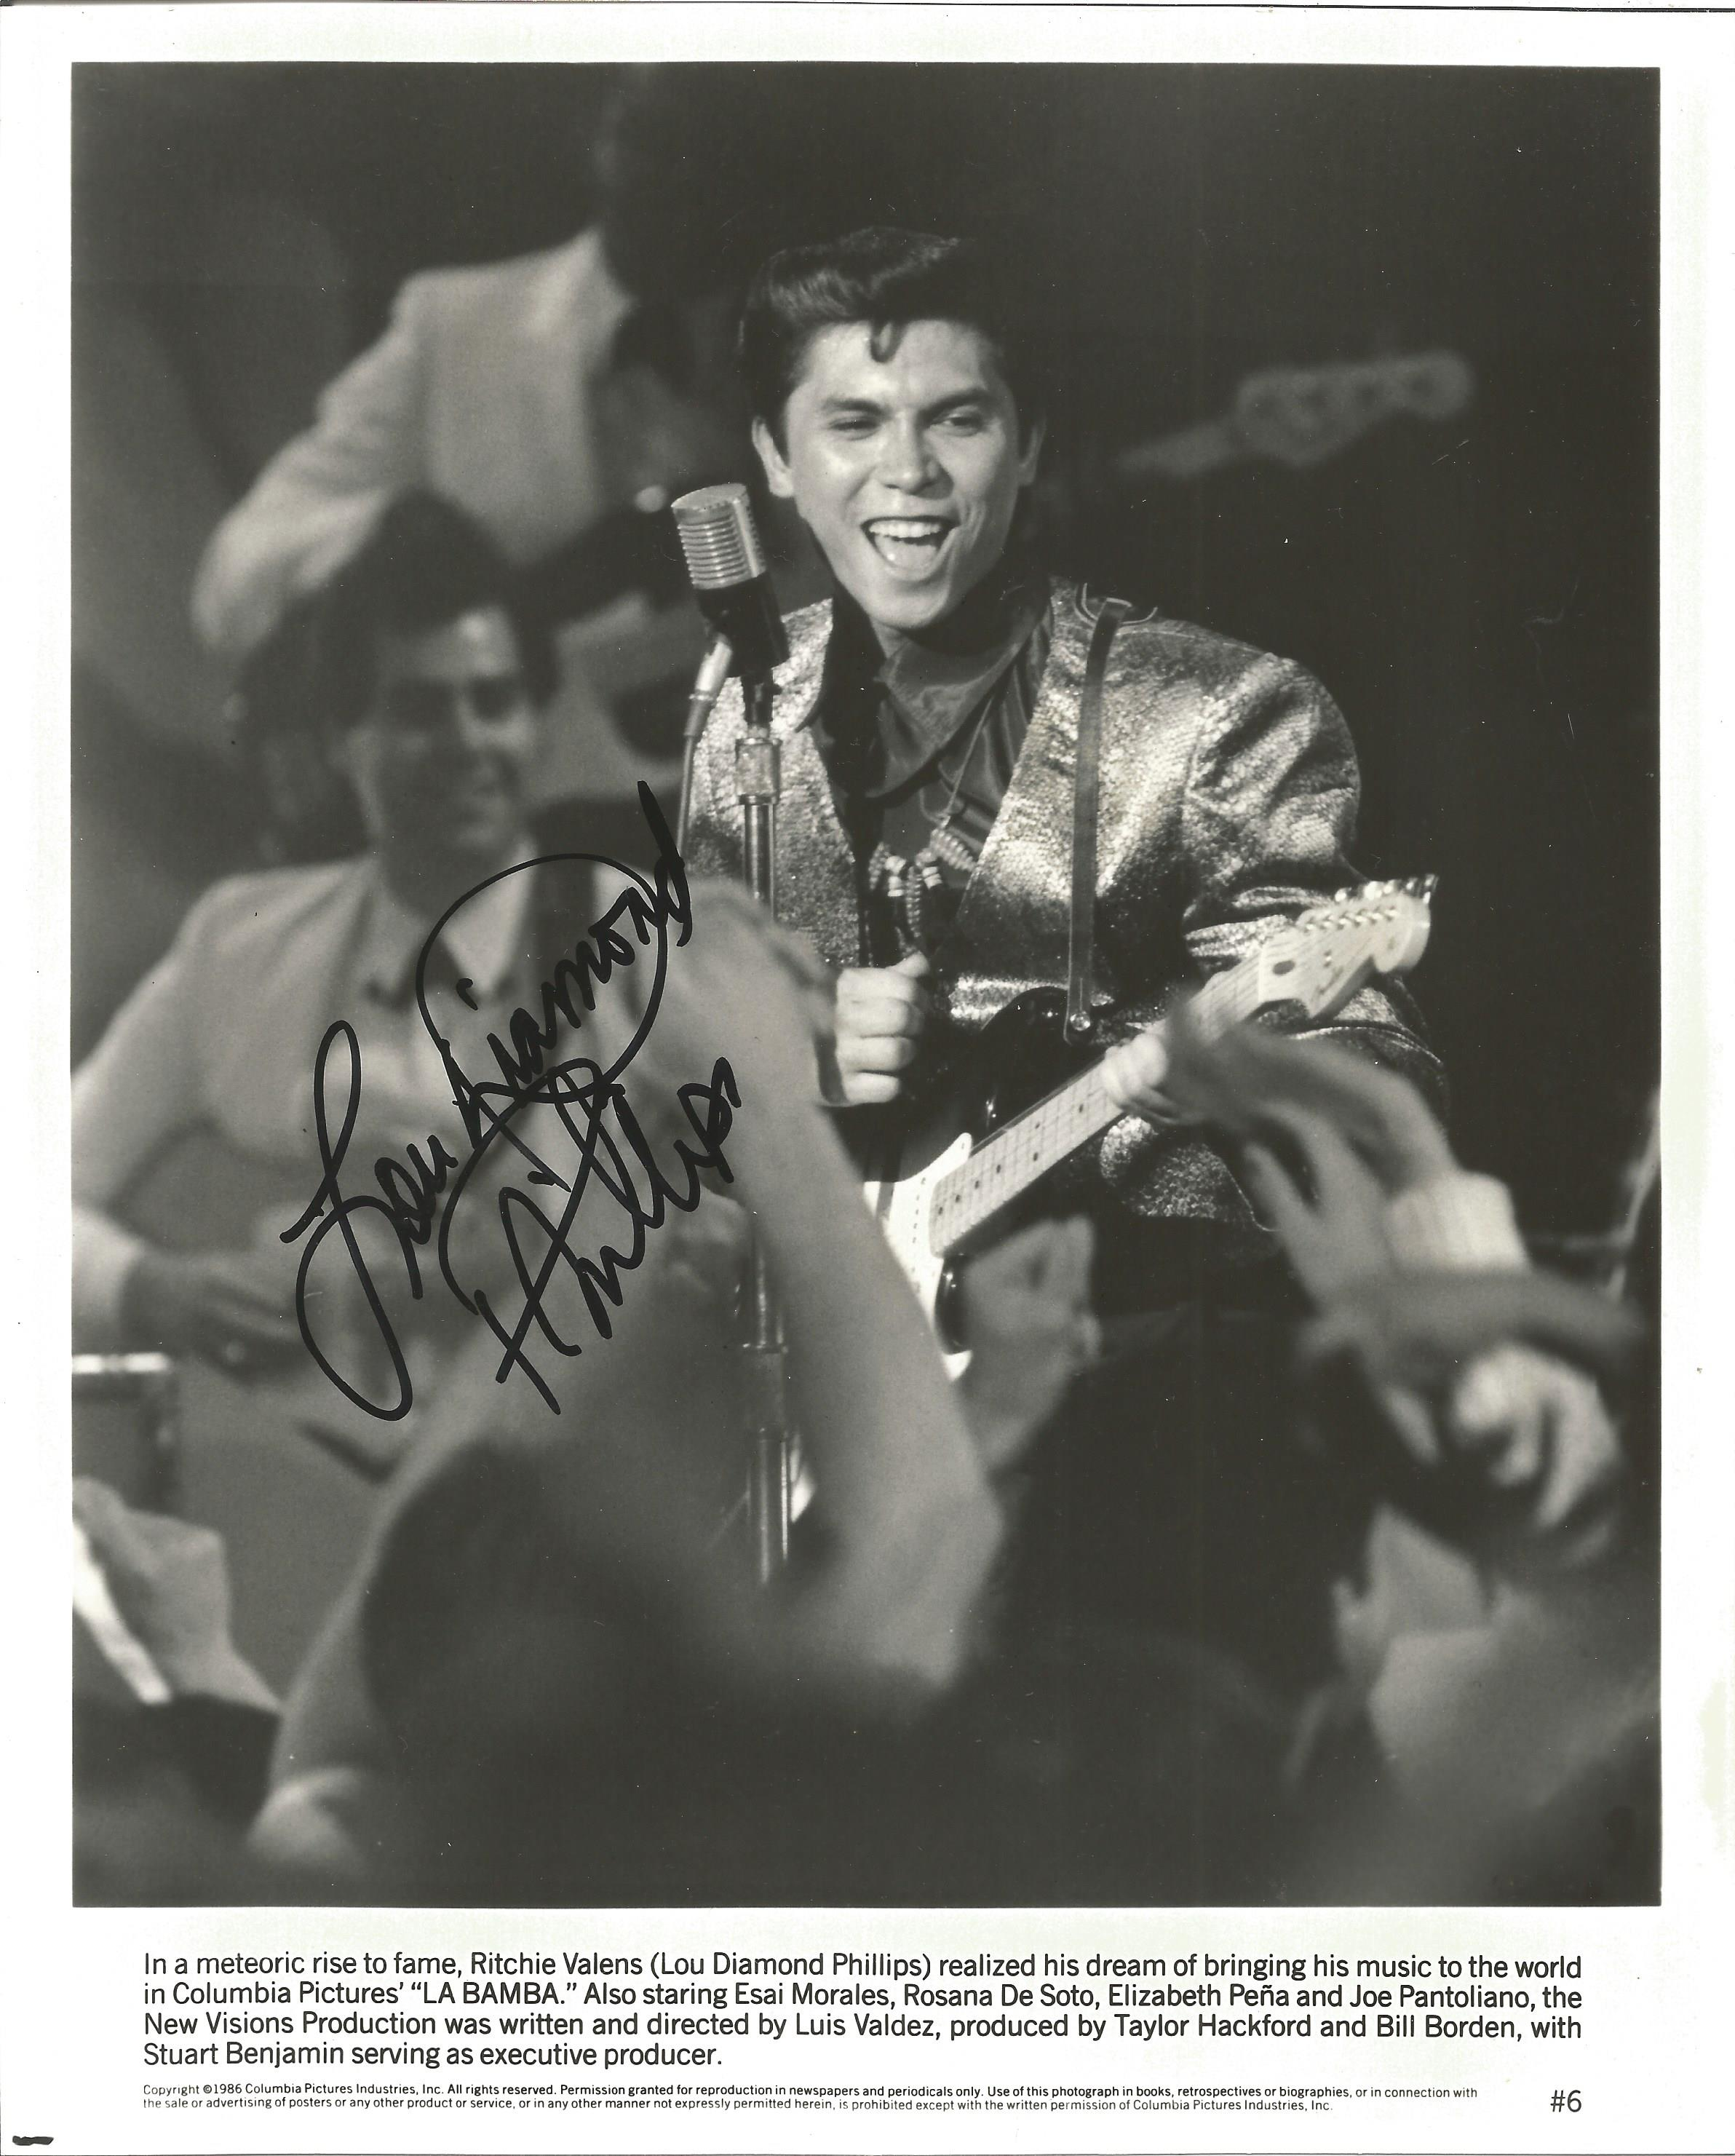 Actor Lou Diamond Phillips signed 10x8 black and white promotional photograph as Ritchie Valens in